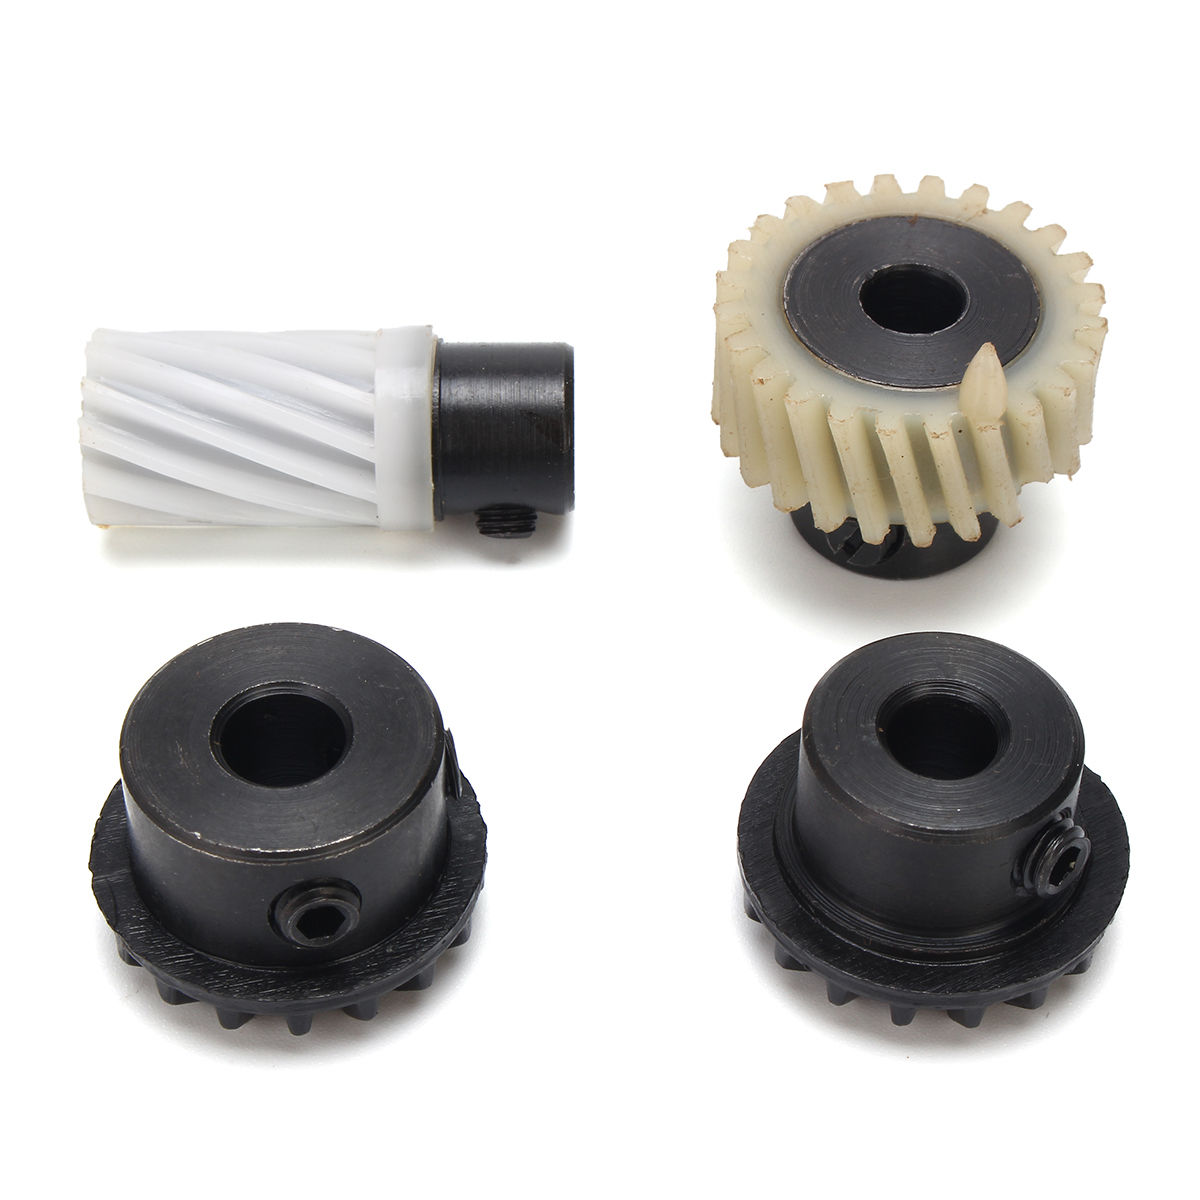 Singer Round feed timing gear part no 383273